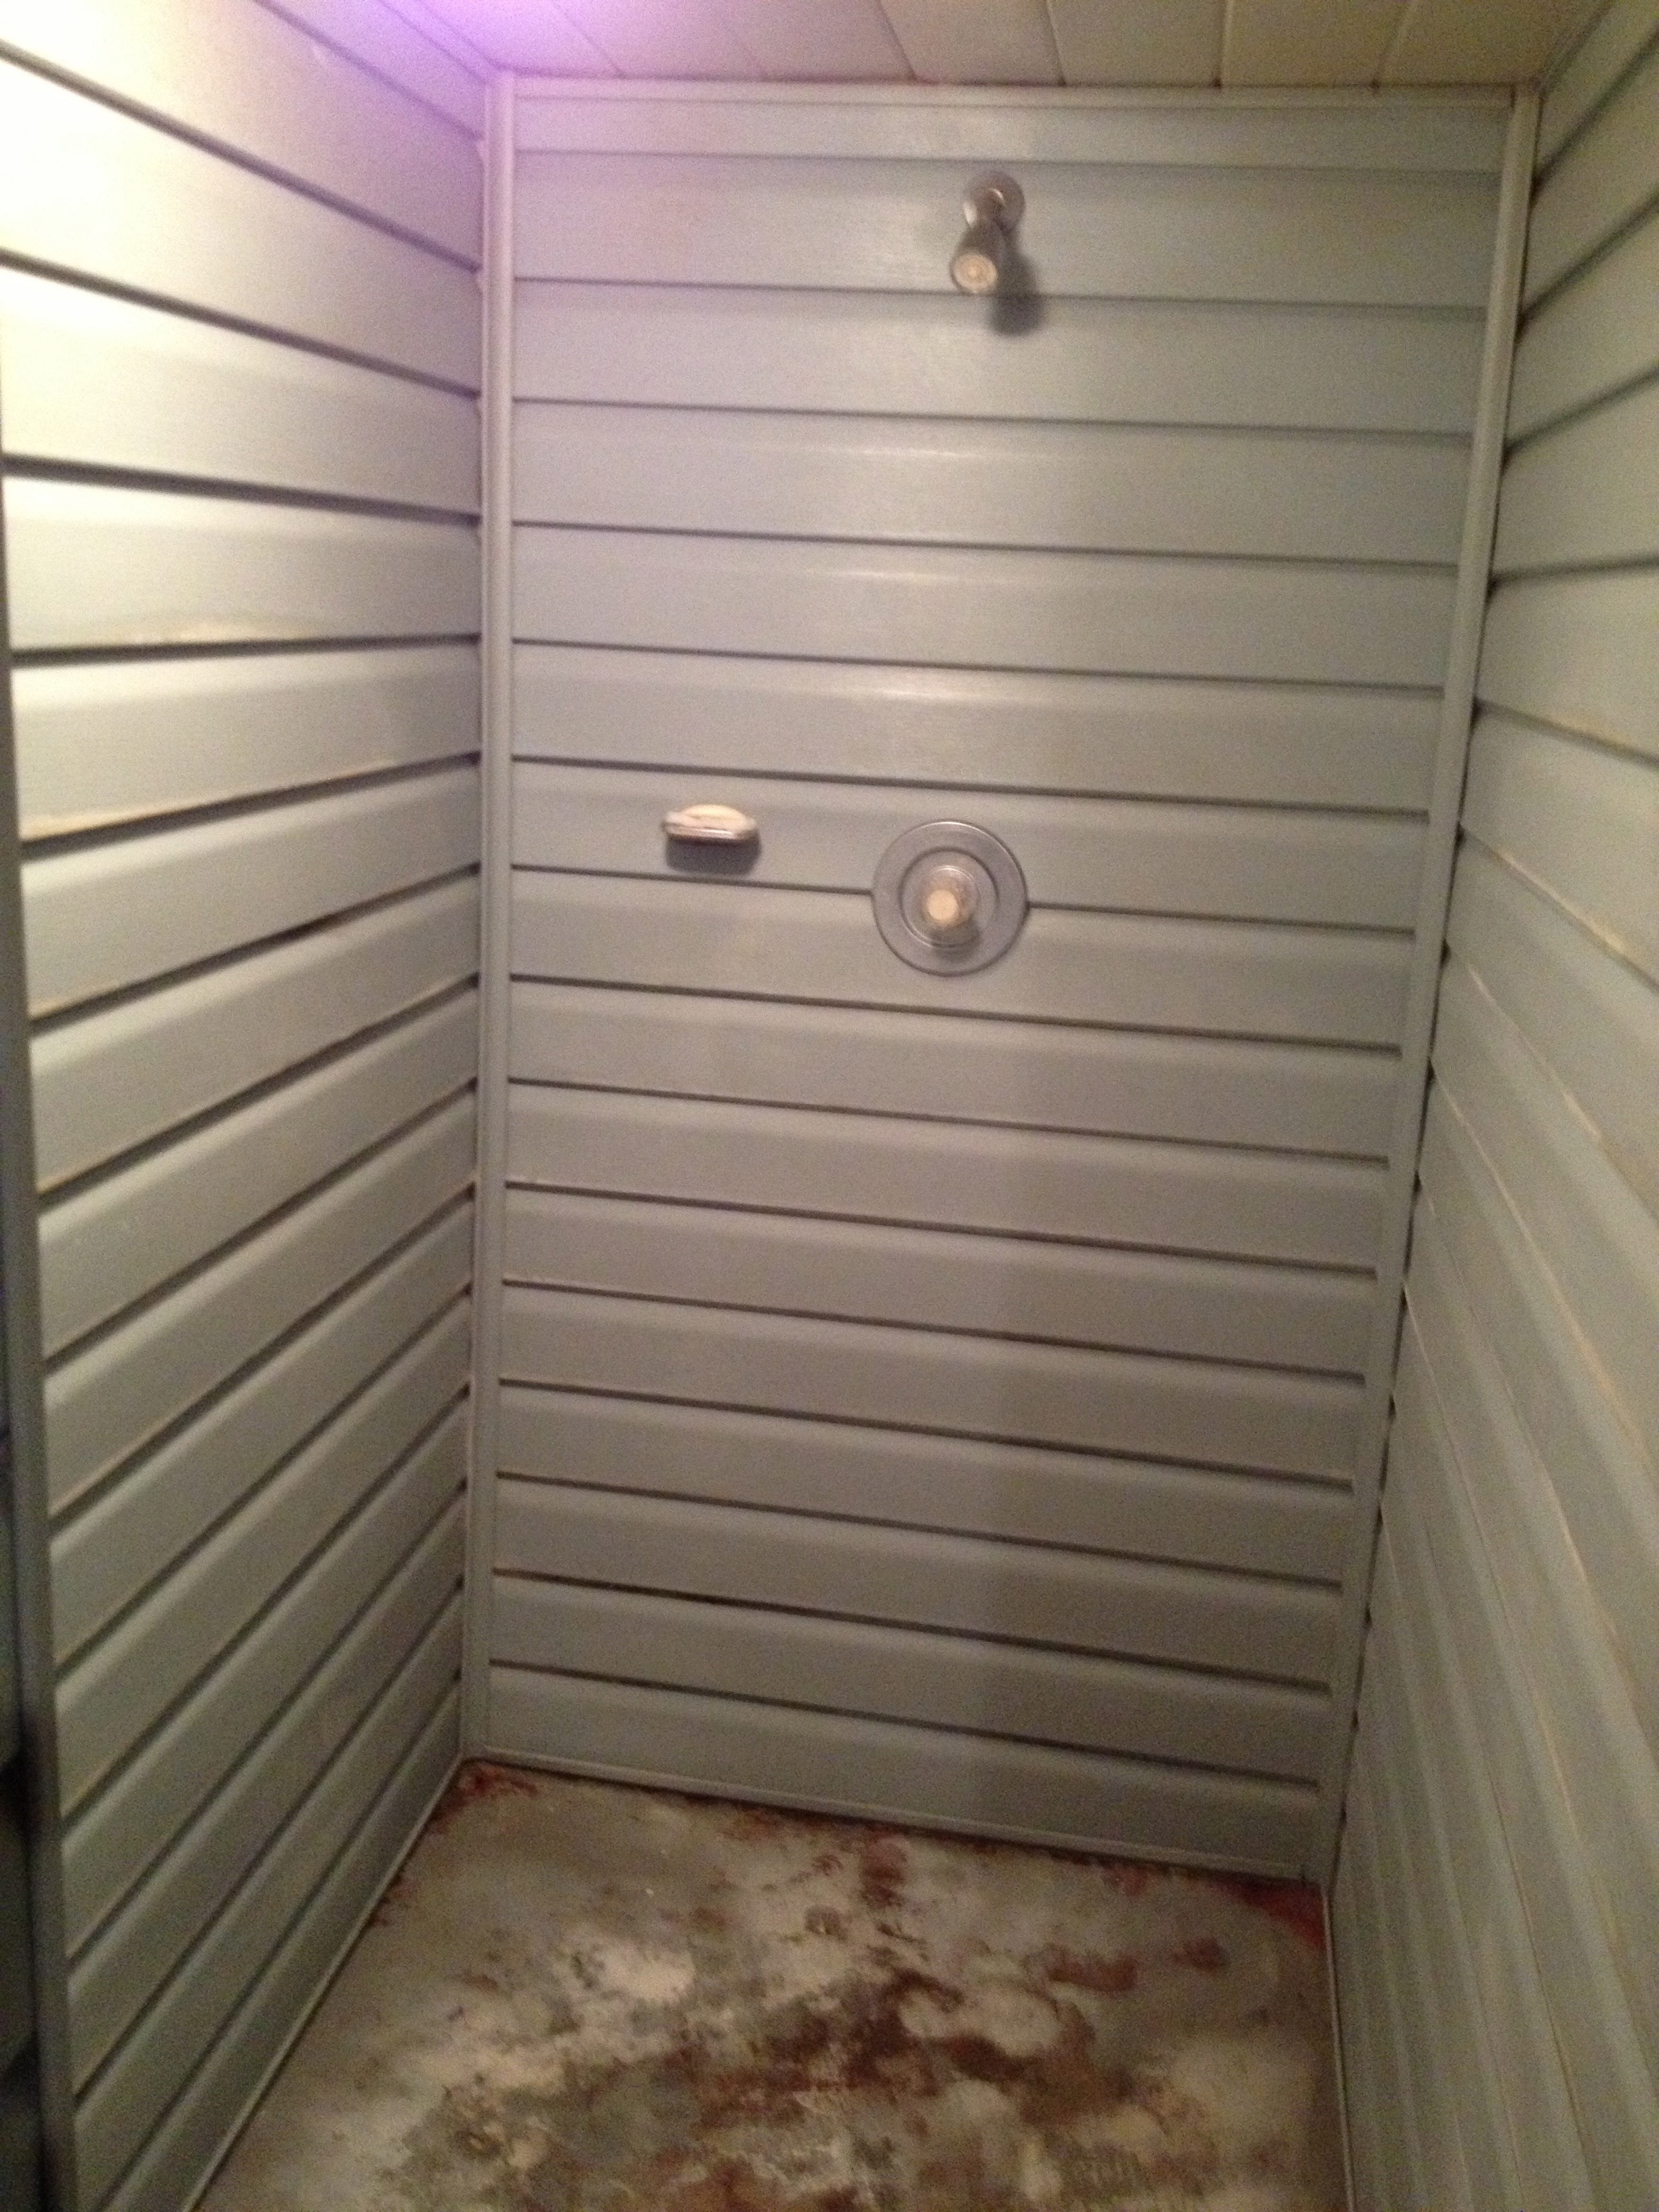 blog citywide home inspections llc Fiberglass Shower Stalls Basement Shower Pans